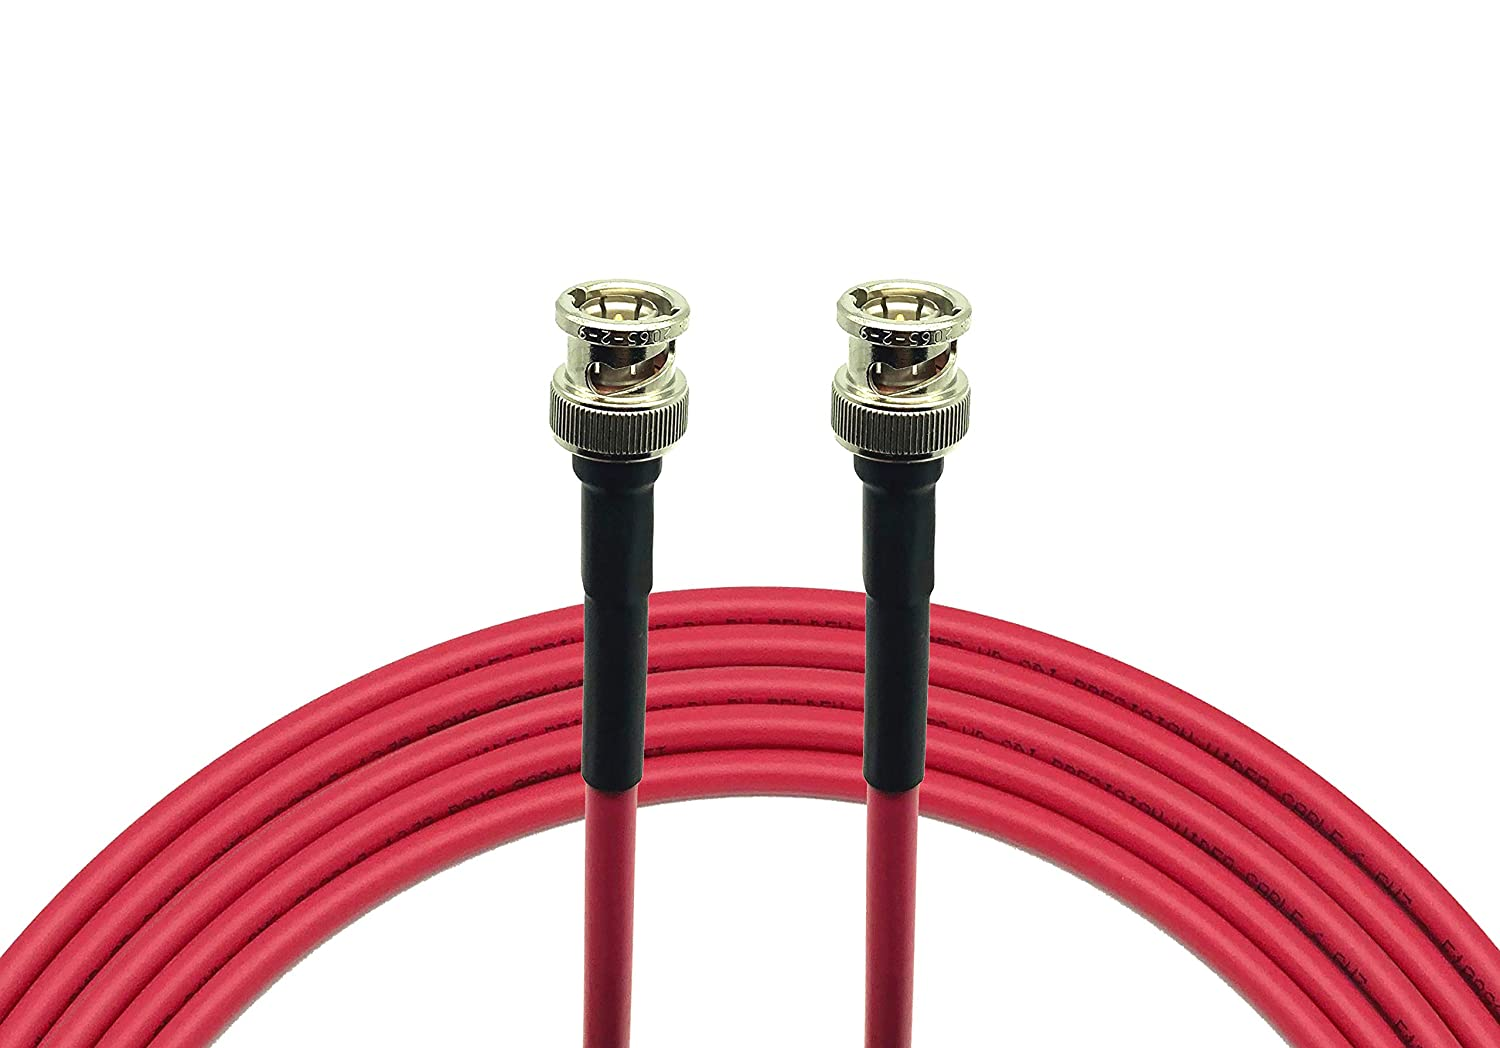 AV-Cables 3G/6G HD SDI Mini RG59 BNC Cable - Belden 1855a (15ft, Red)